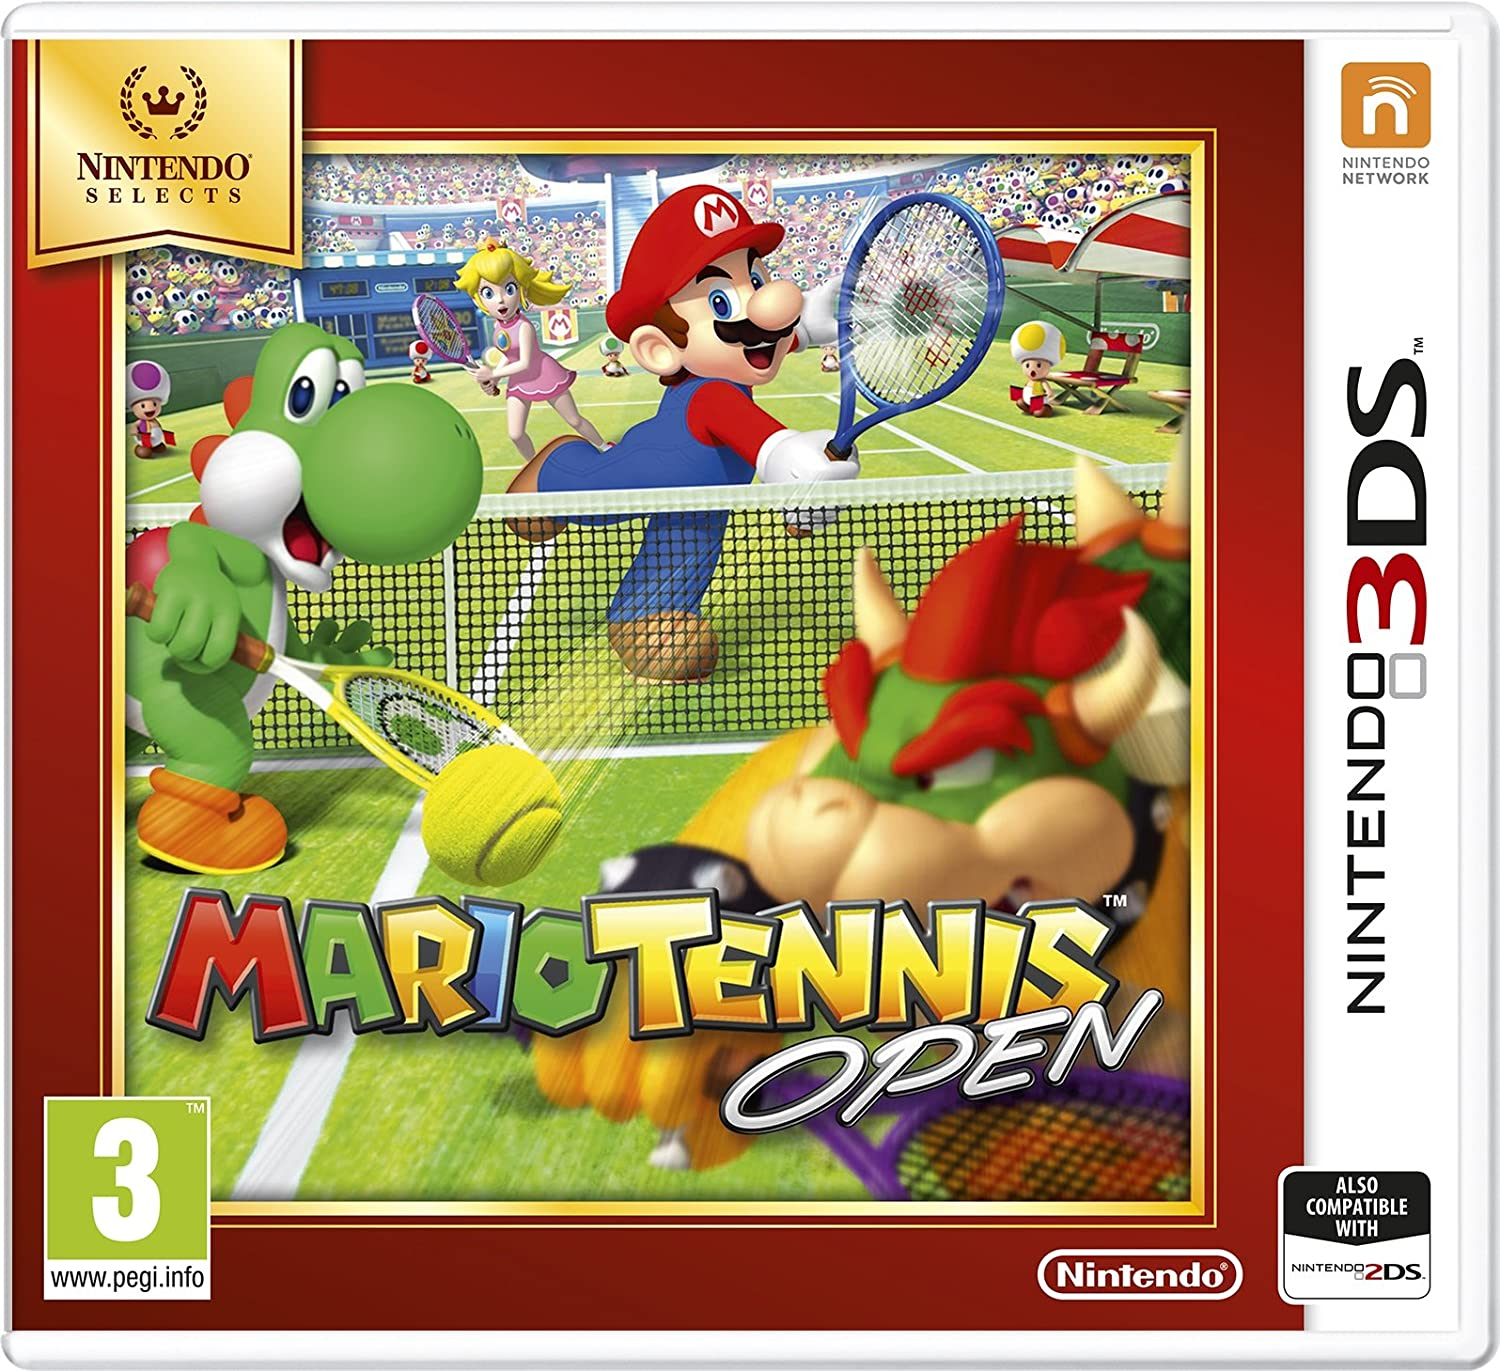 Nintendo Selects Free shipping anywhere in the nation - Mario half Open 3DS Tennis